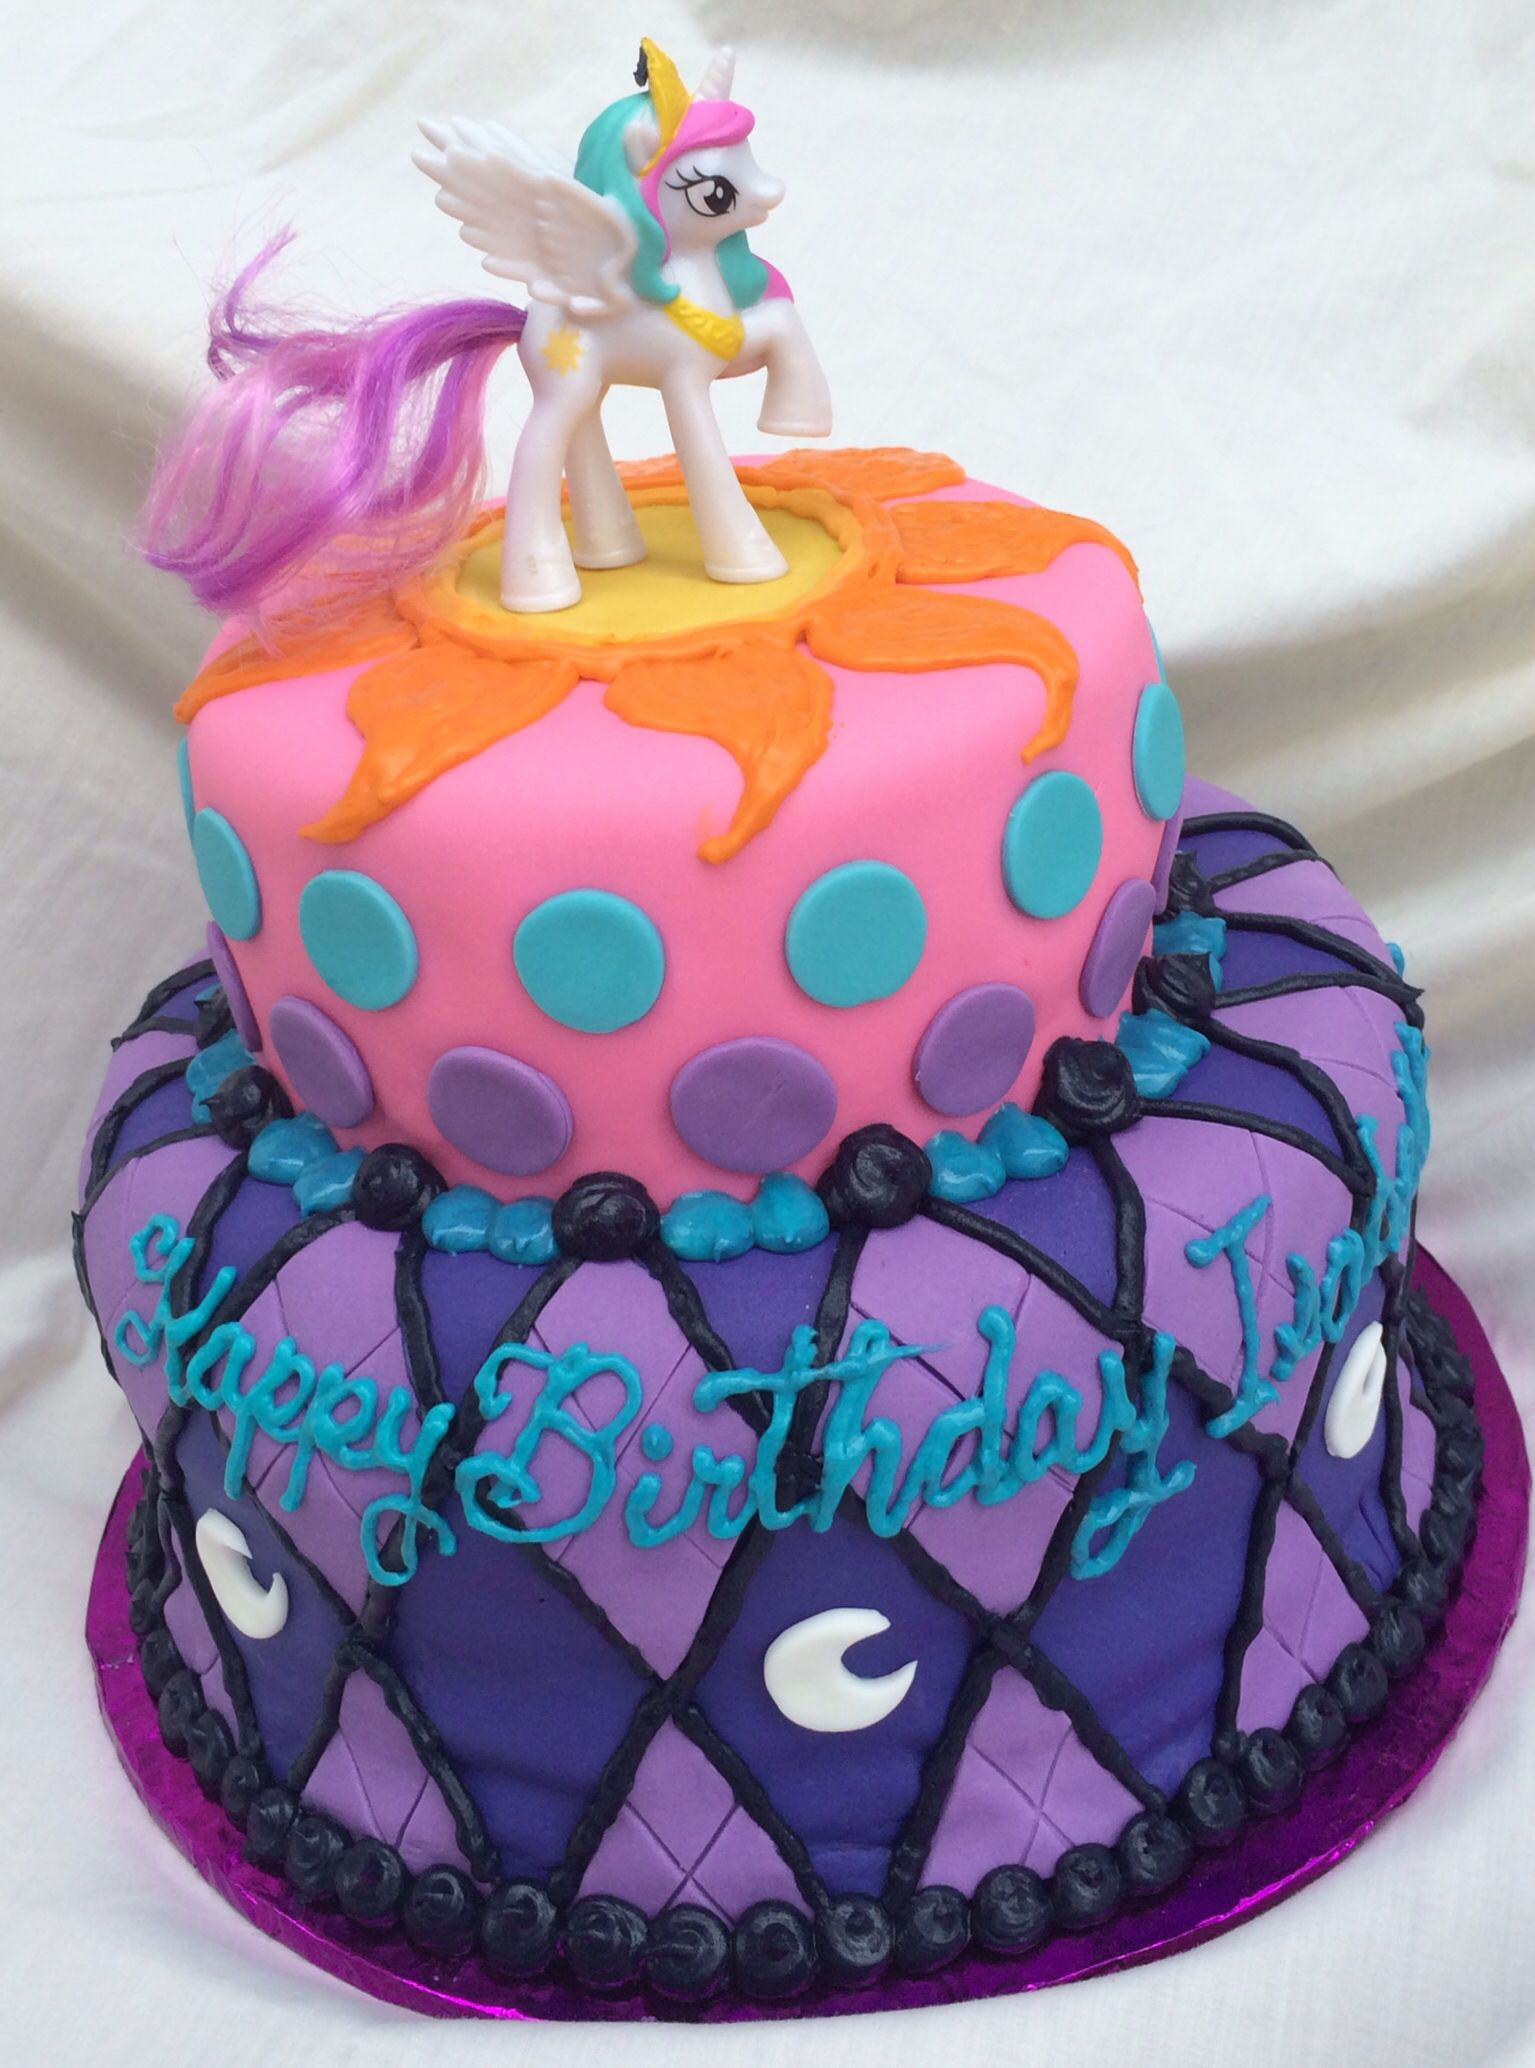 My Little Pony Cake By Inphinity Designs With Princess Celestia And